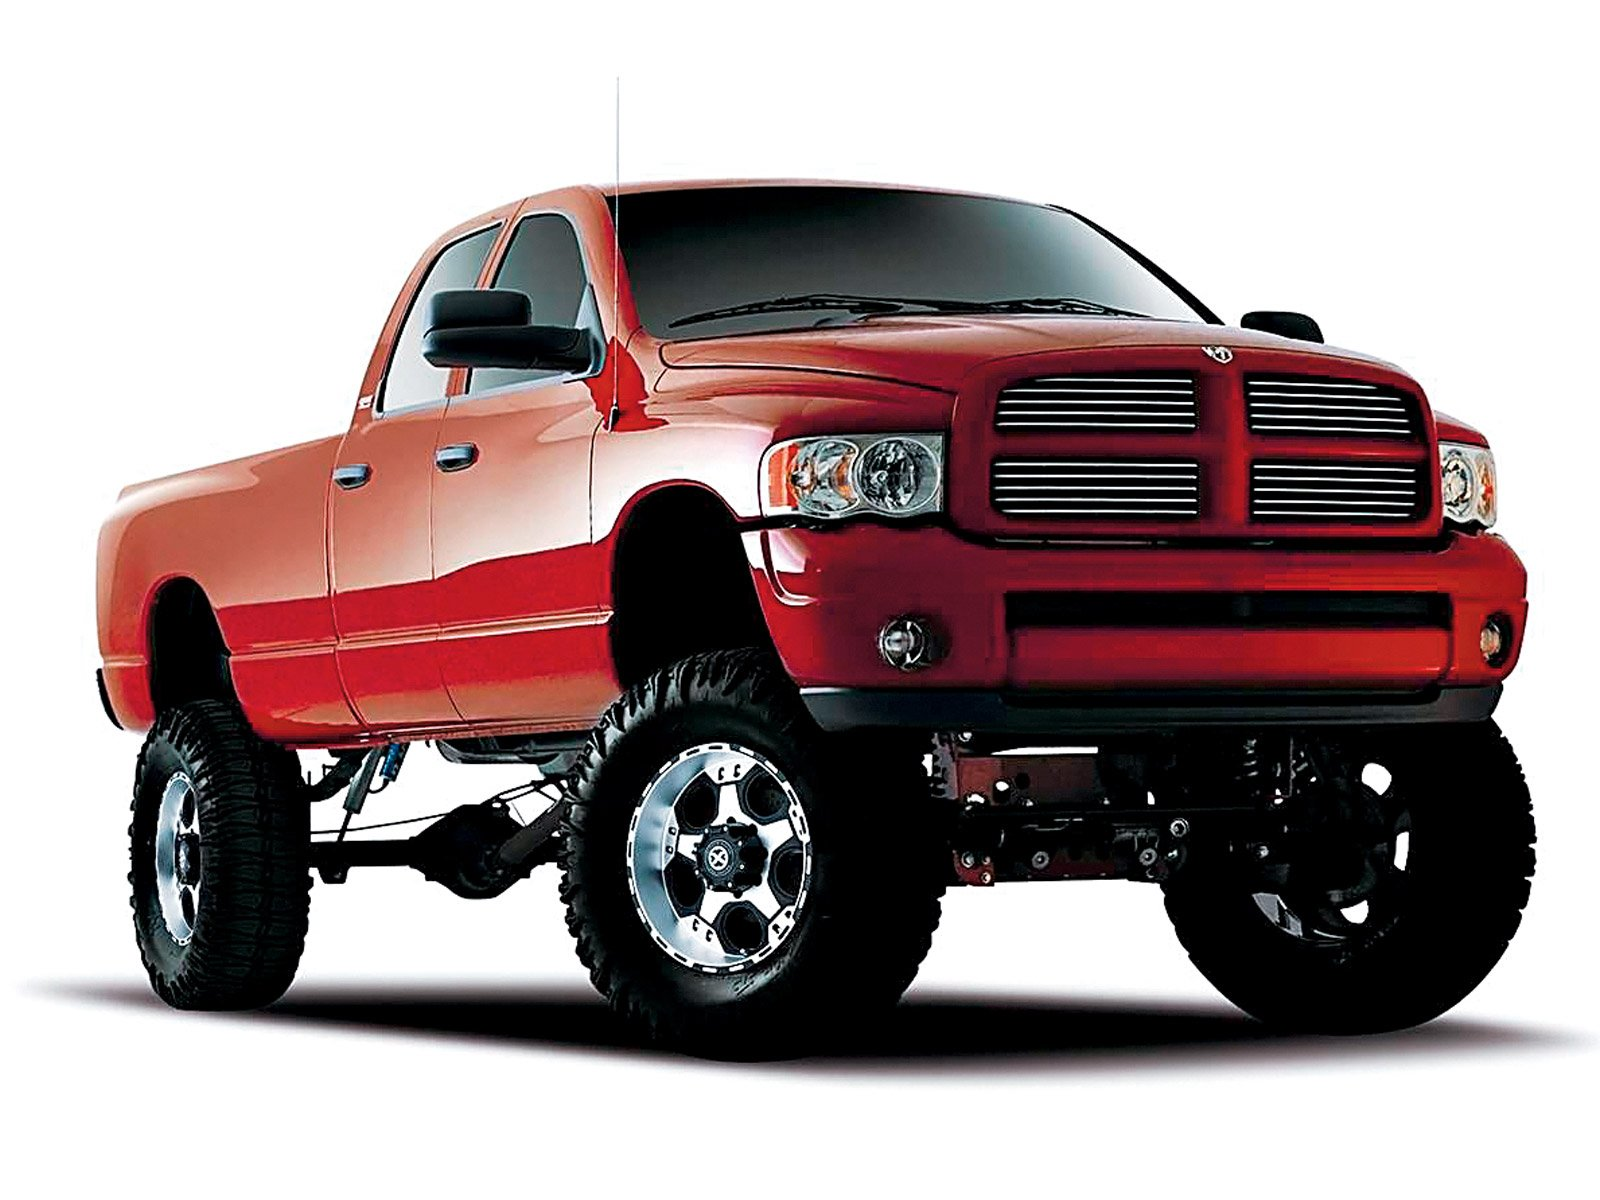 Pickup wallpaper wallpapersafari - Lifted ford trucks wallpapers ...